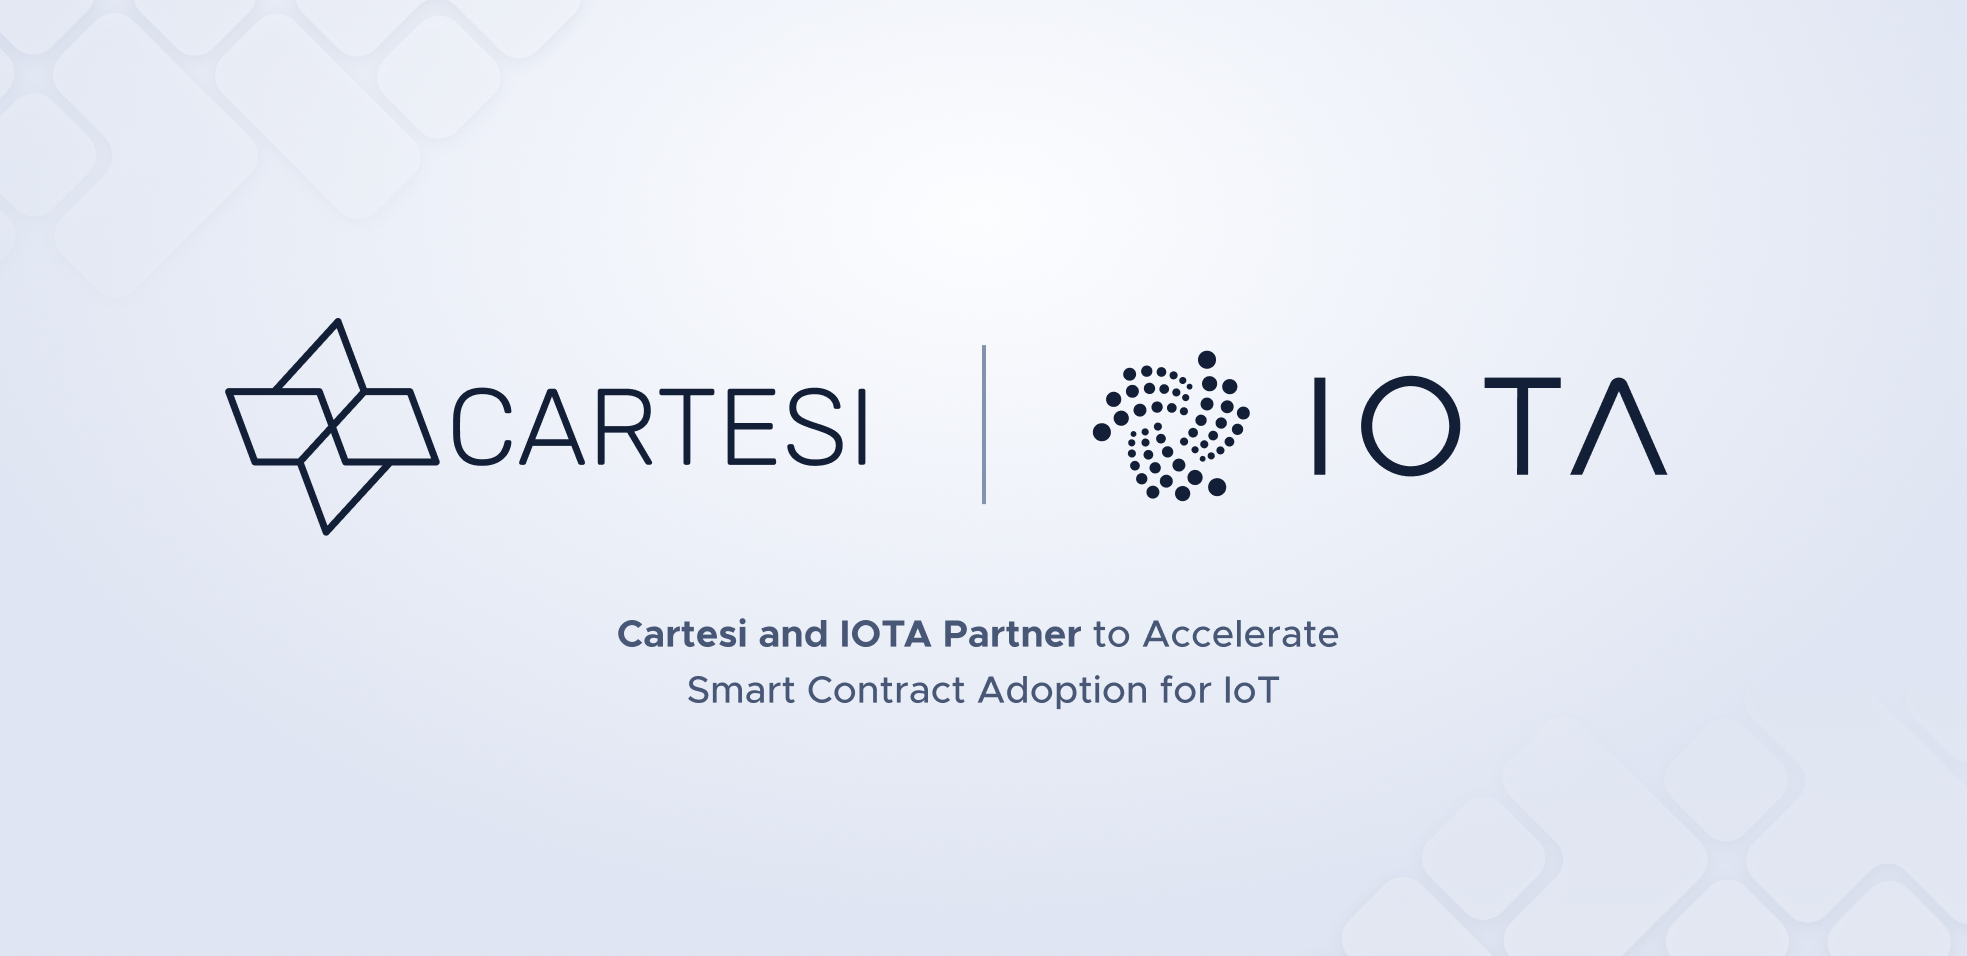 Cartesi and the IOTA Foundation Partner to Accelerate Smart Contract Adoption for IoT